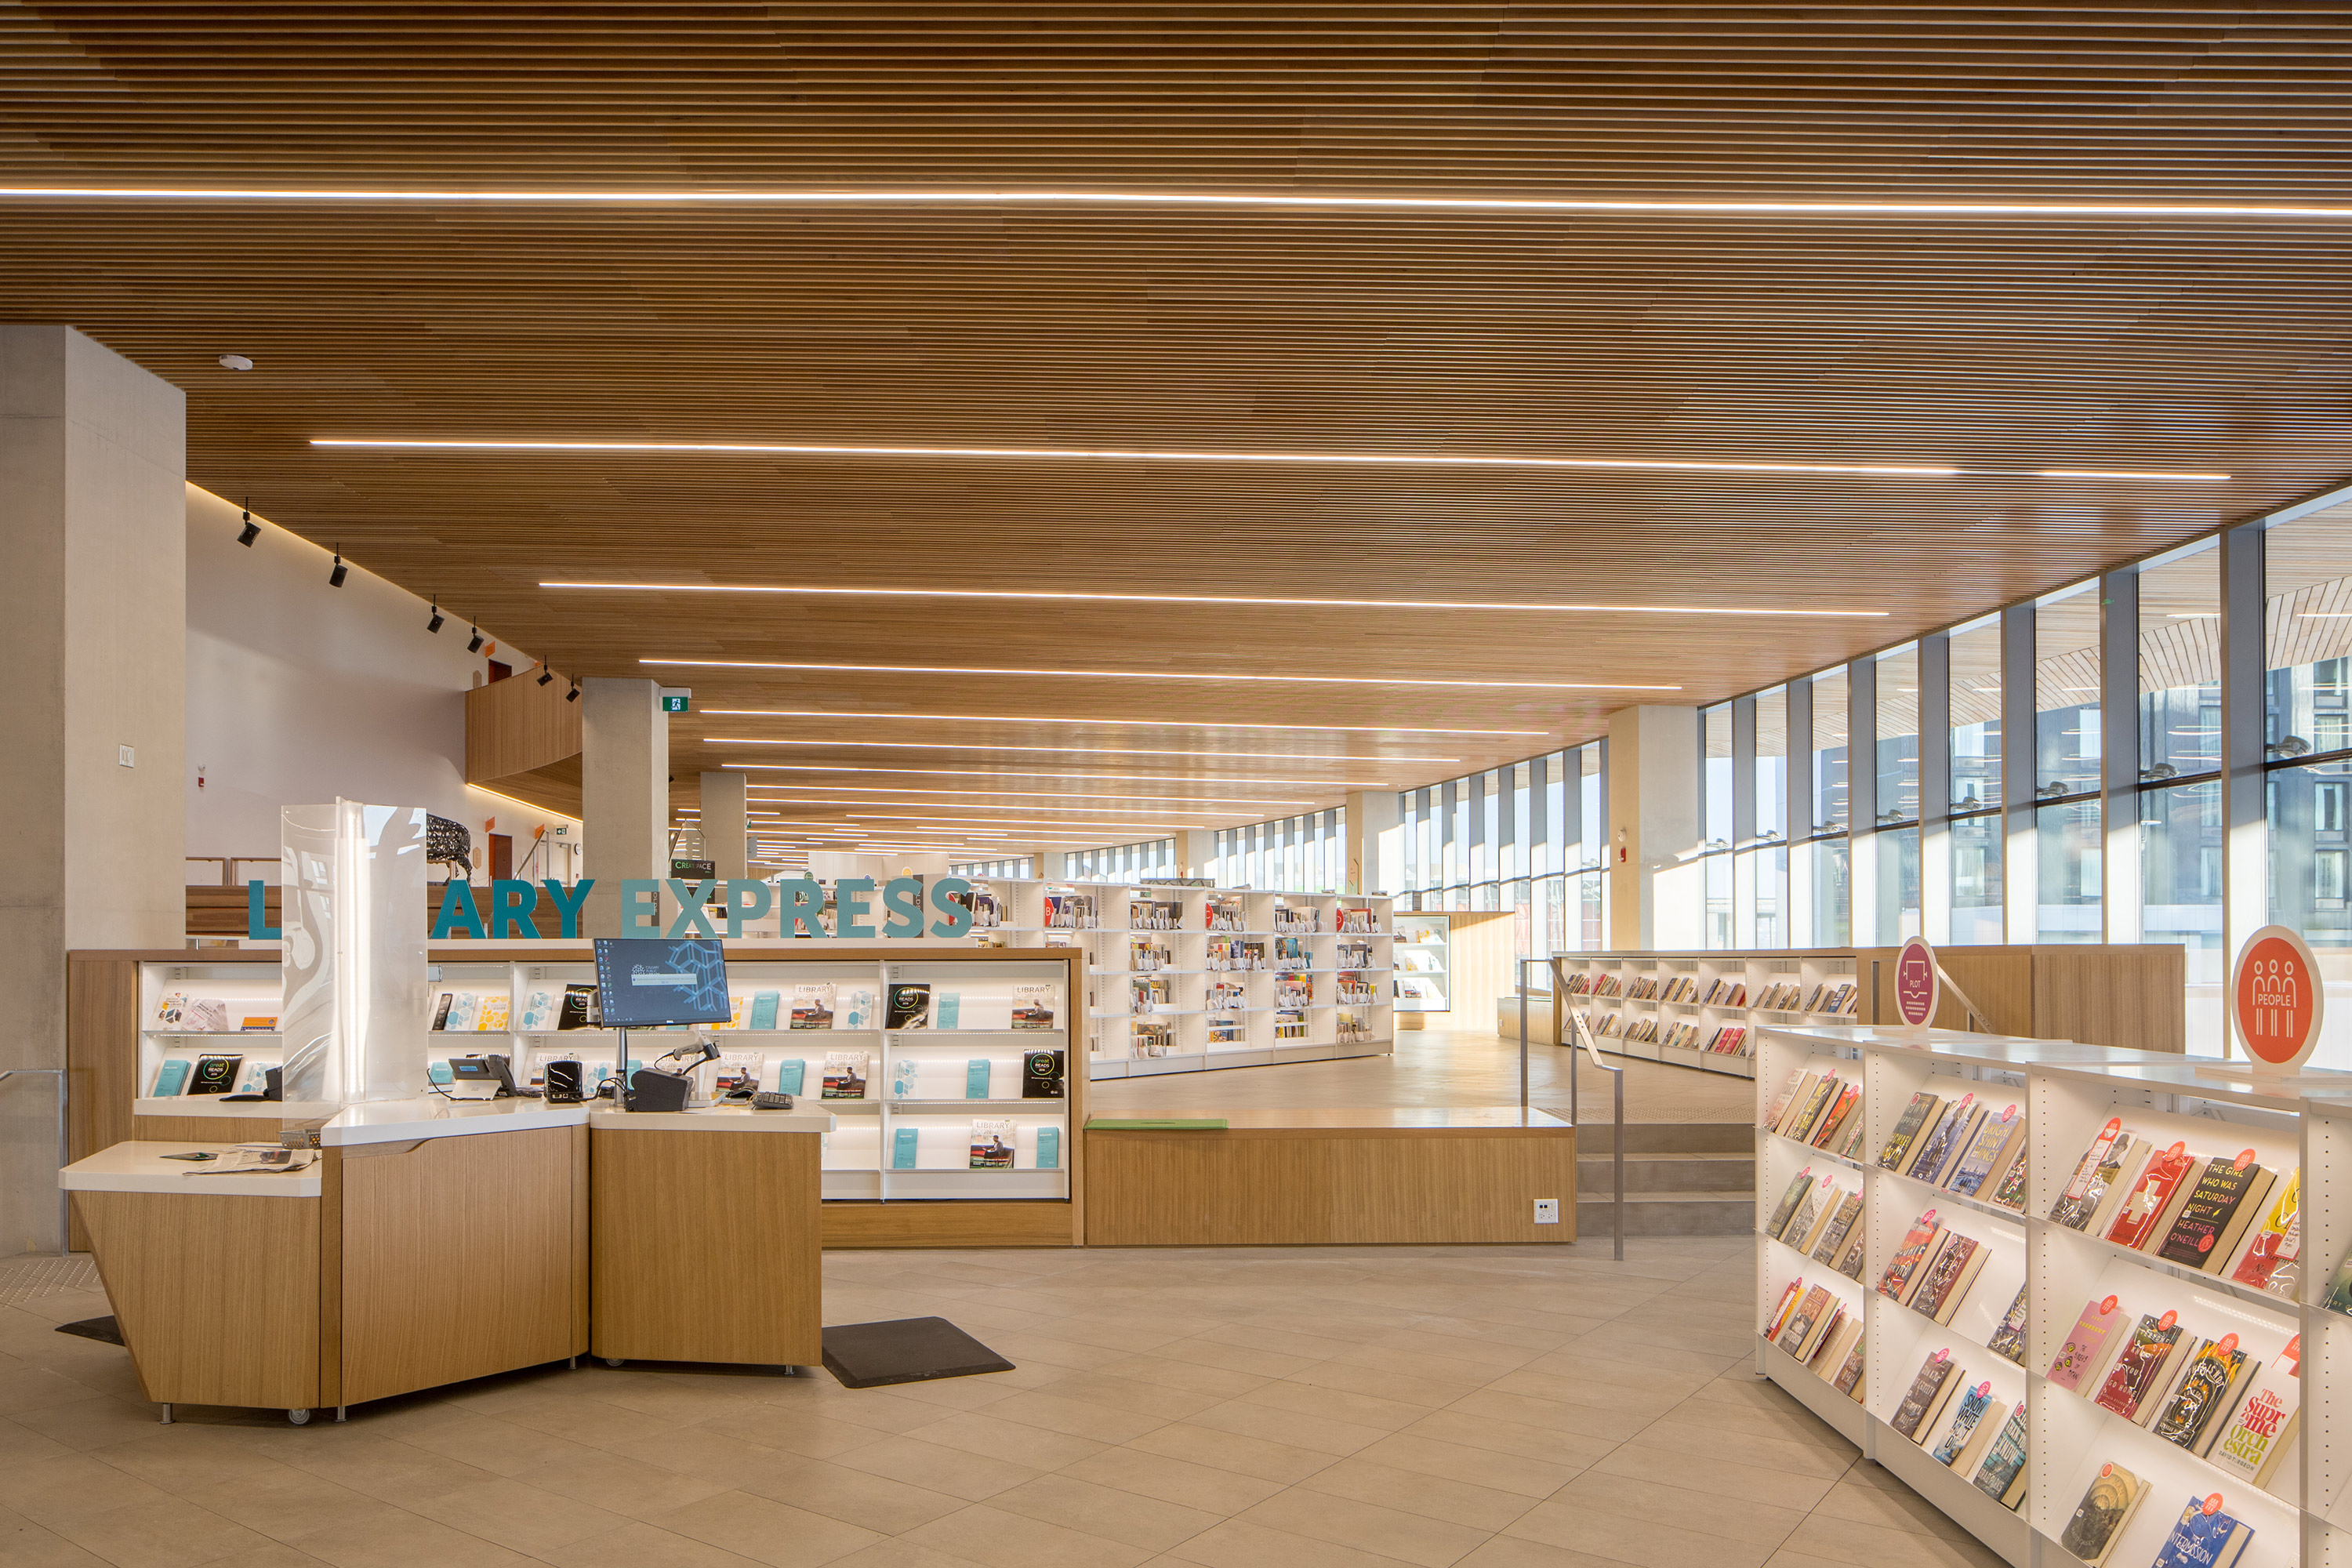 Beam2 Photo Recessed Library New Central Library Copyright Hainsworth Photography 02 HR